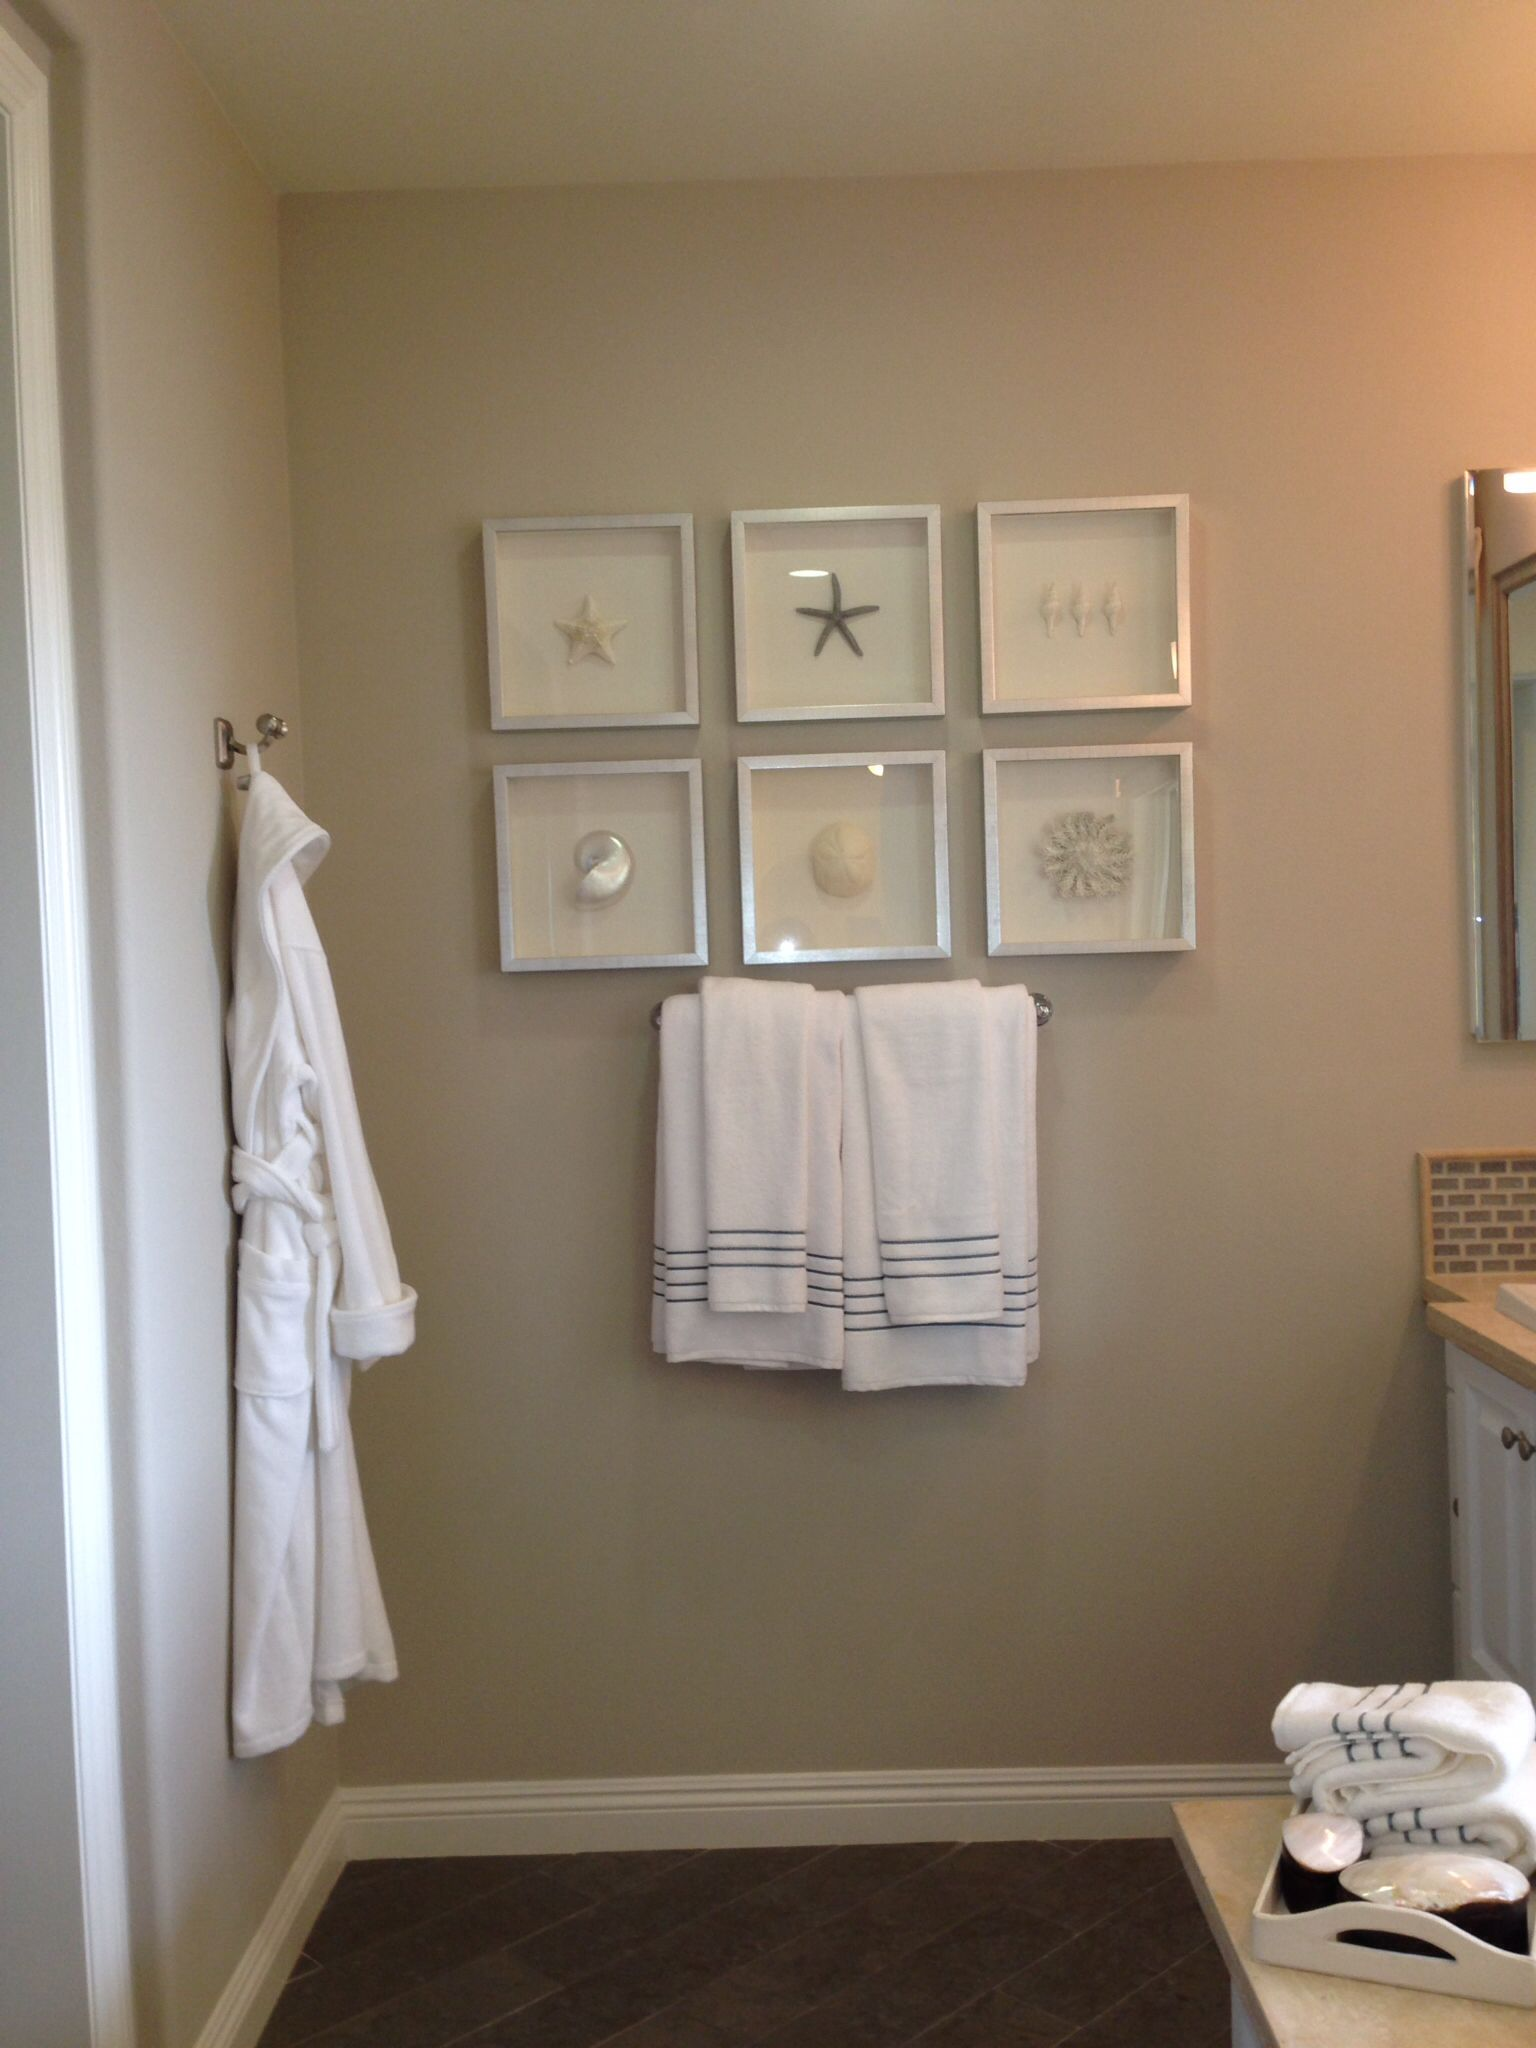 Bathroom beach decor framing ideas model home for Art for bathroom ideas